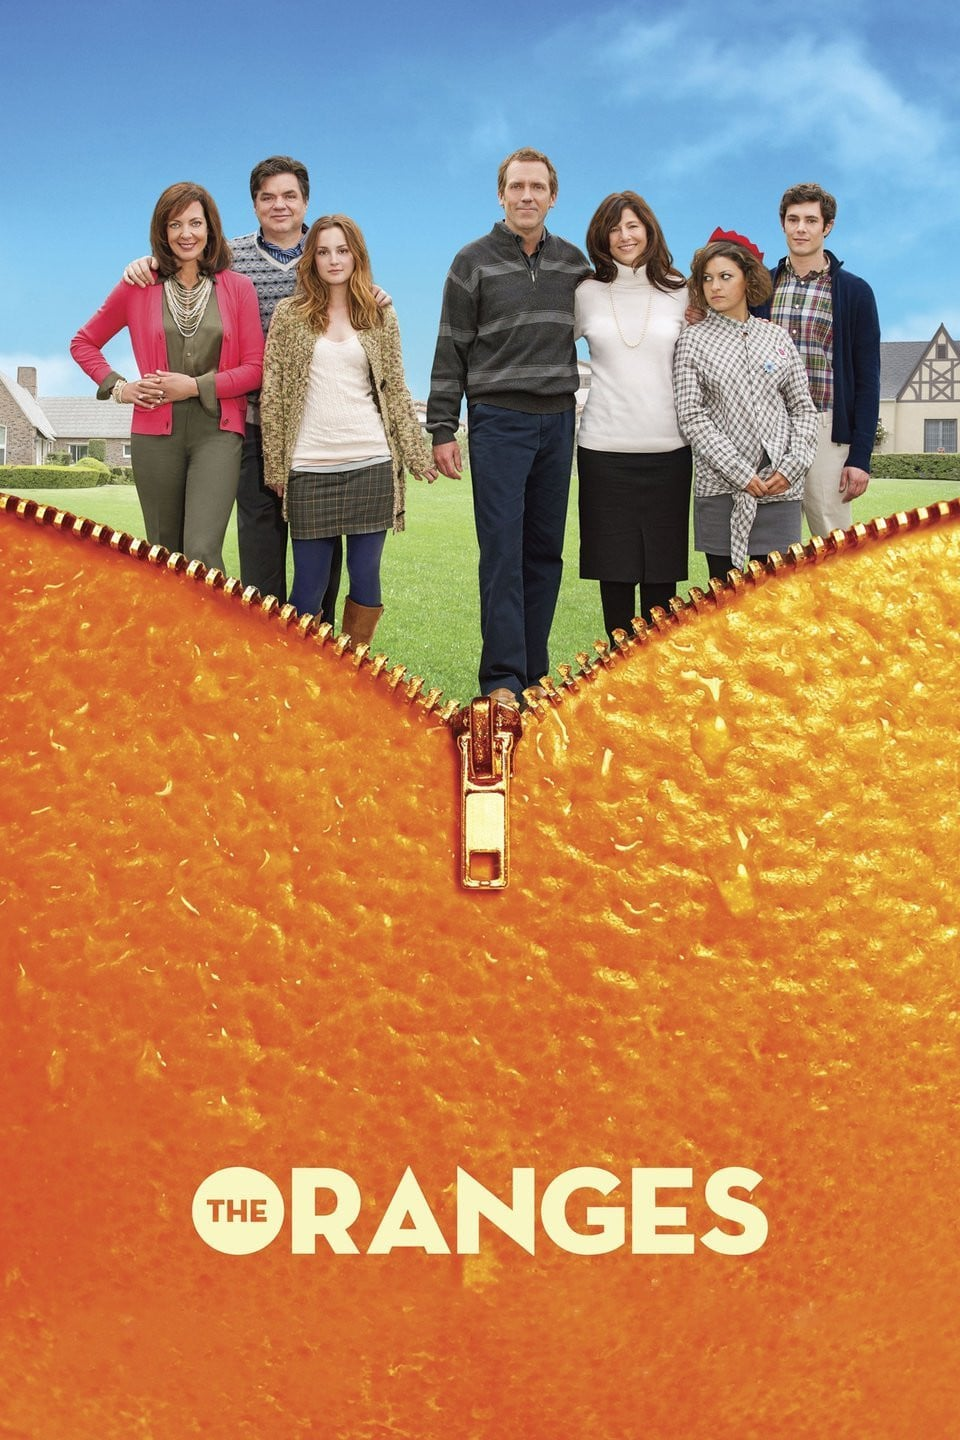 The Oranges Movie Streaming Online Watch on Tubi